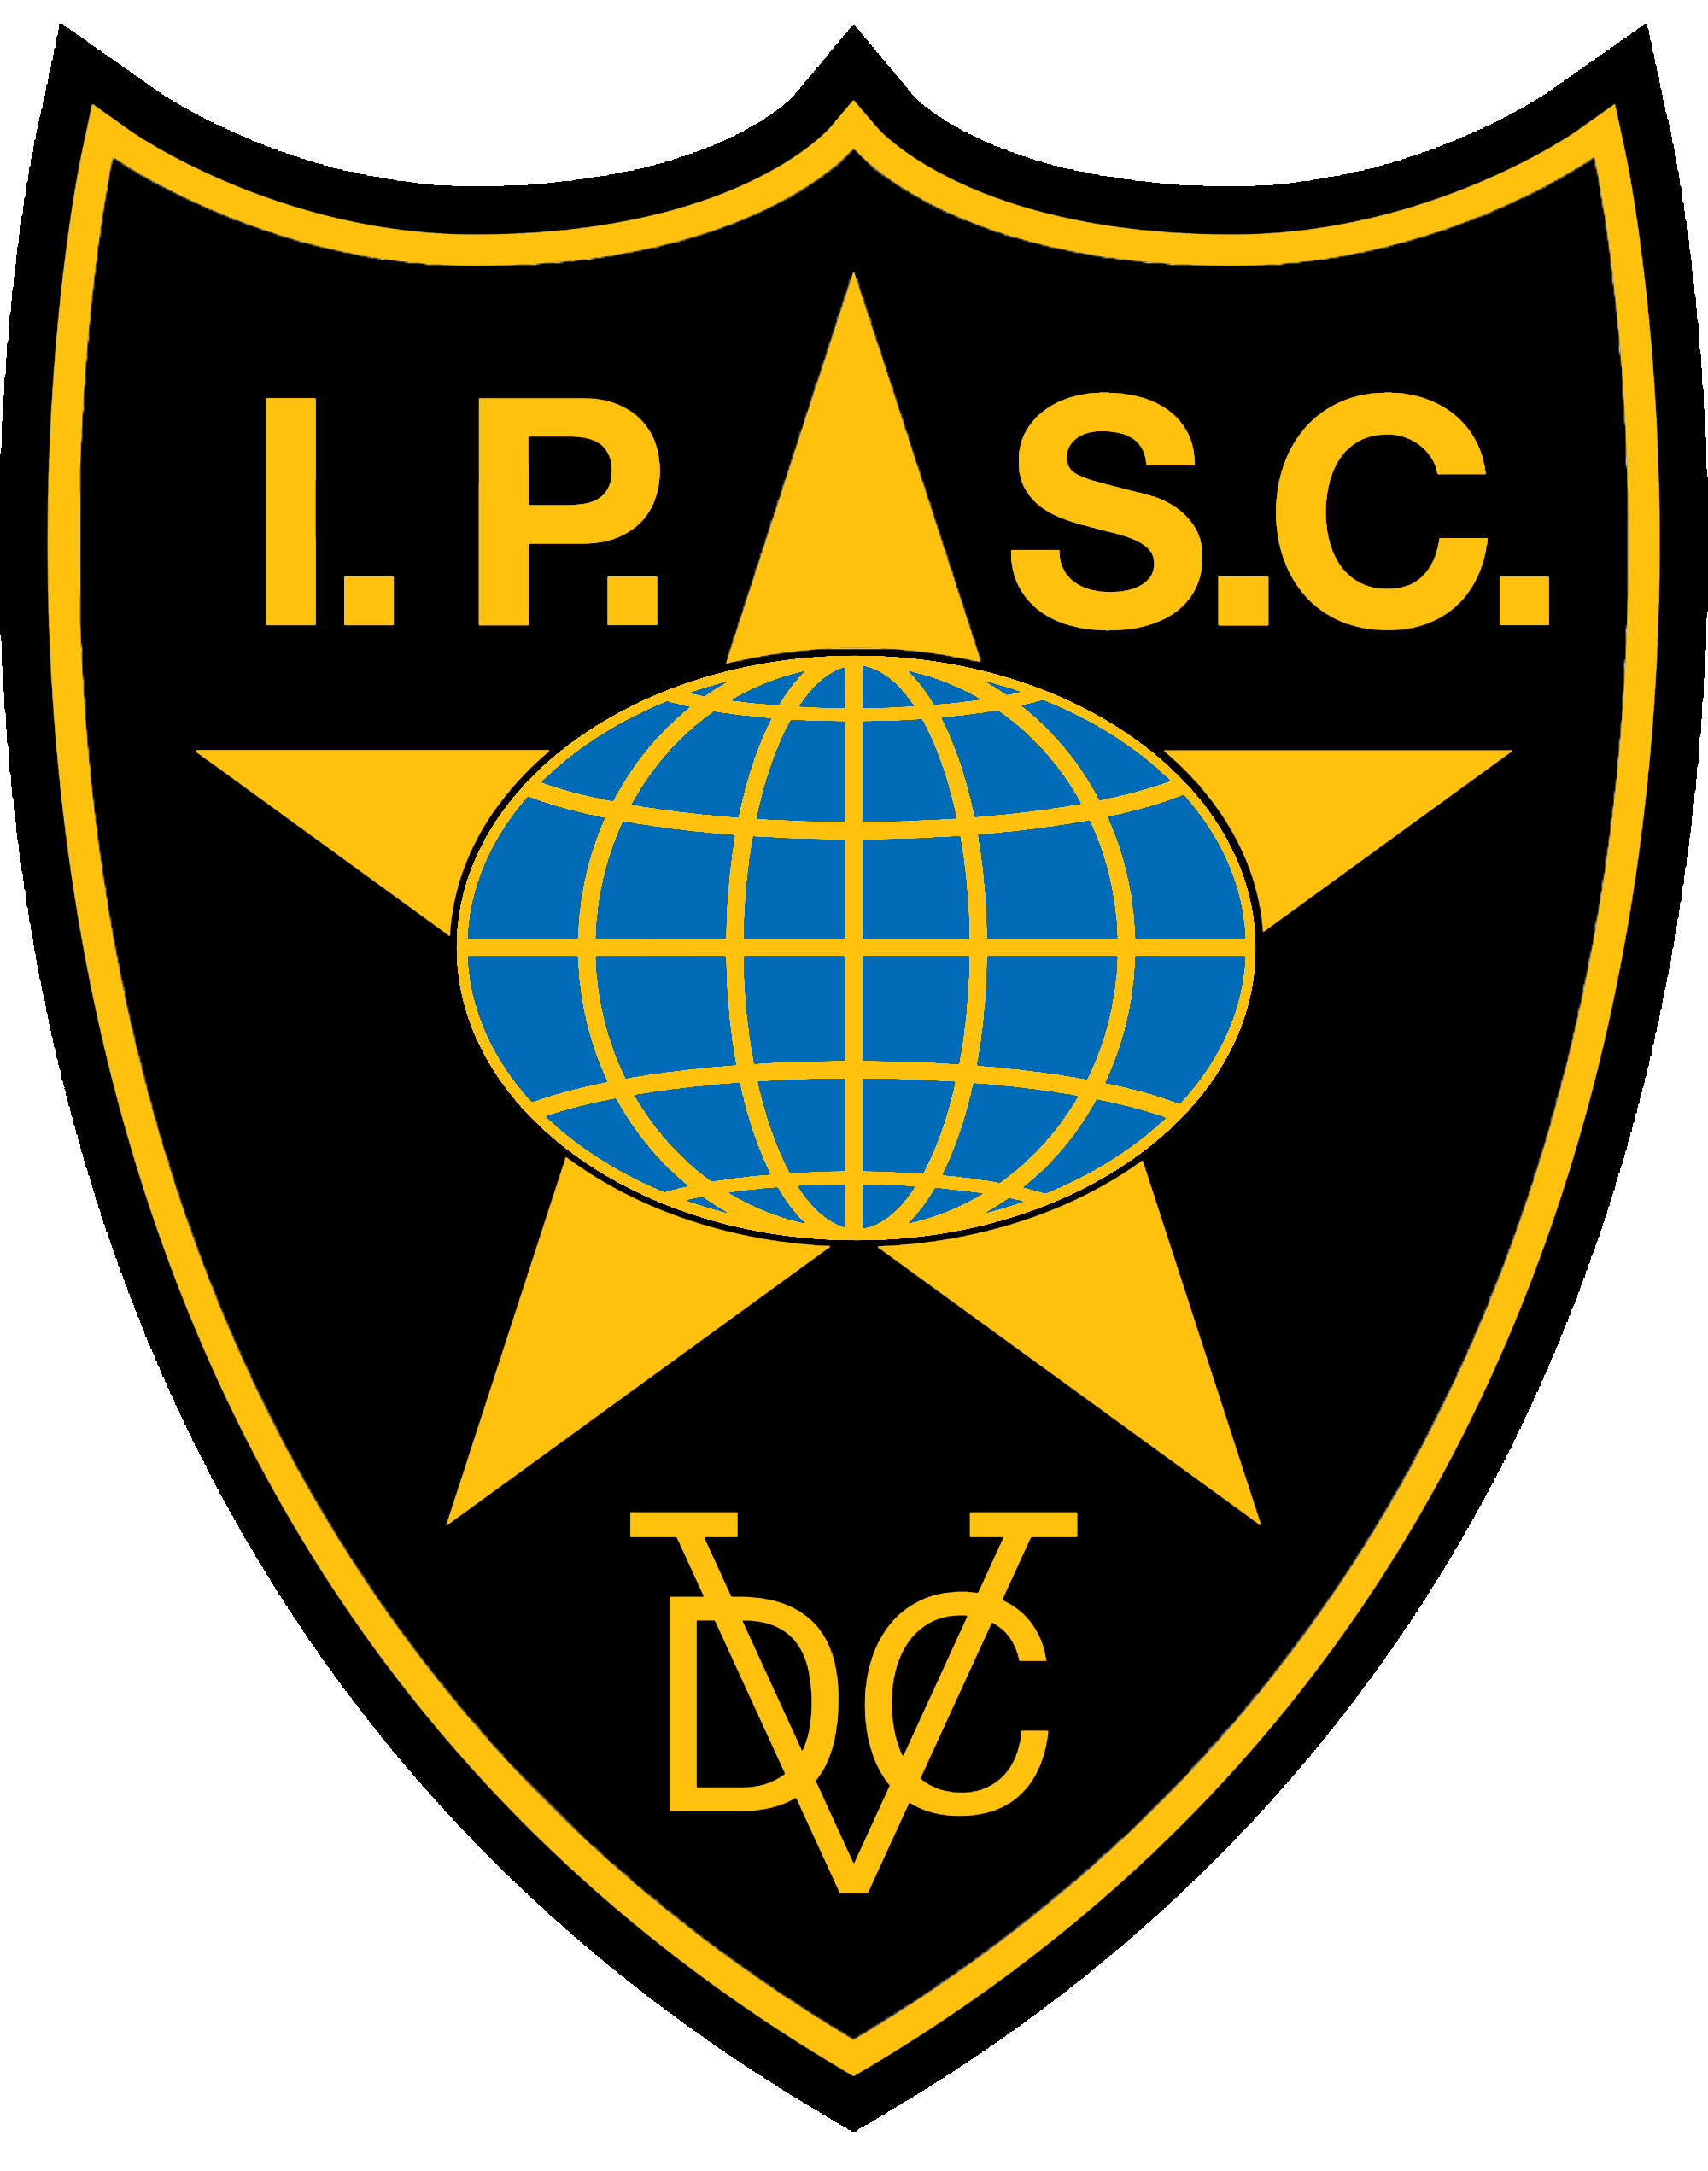 ipsc, practical shooting, international practical shooting confederation